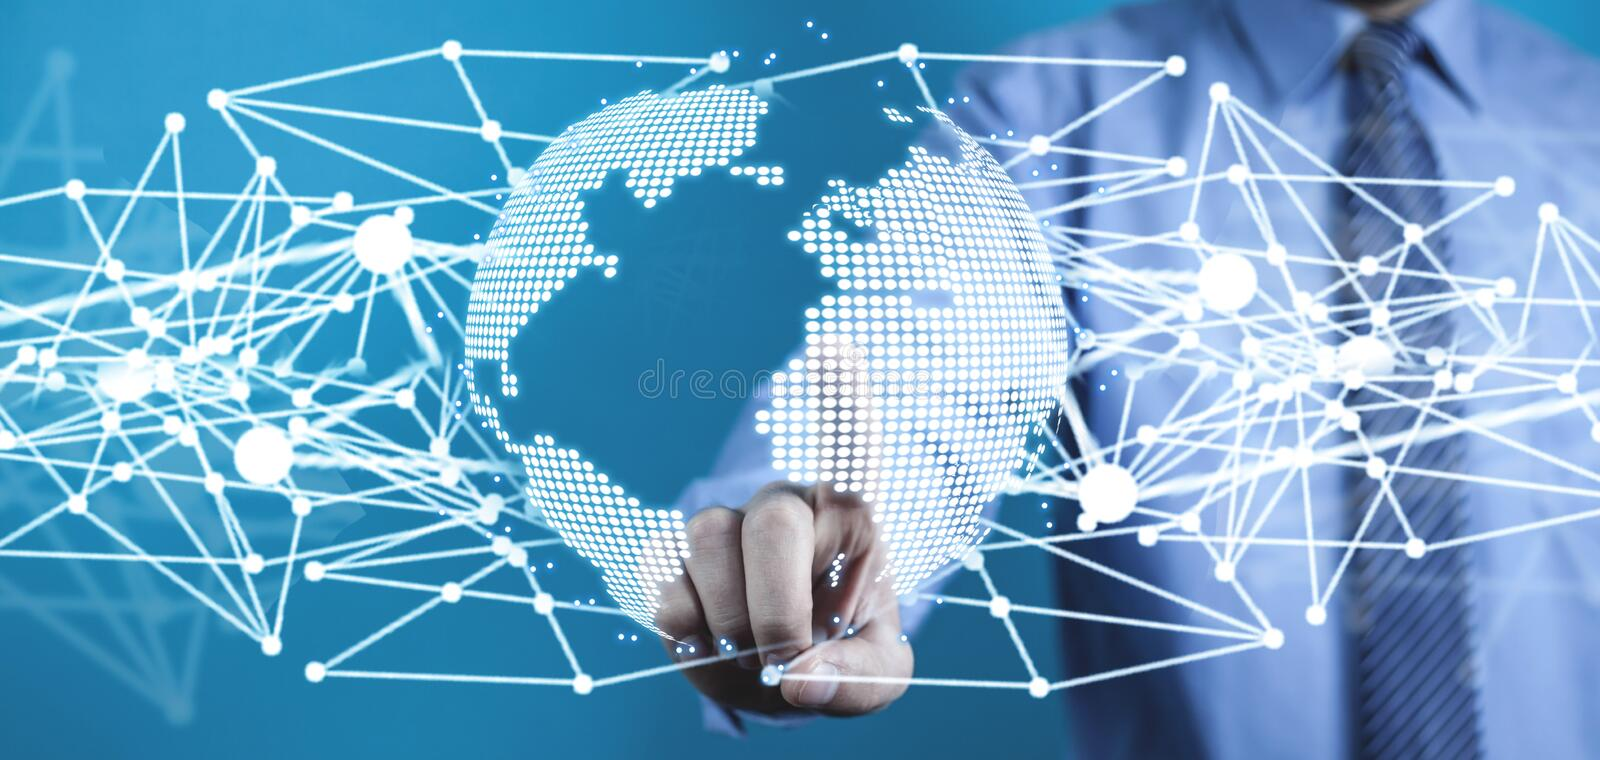 Global network connection. Concept of global business and internet stock illustration